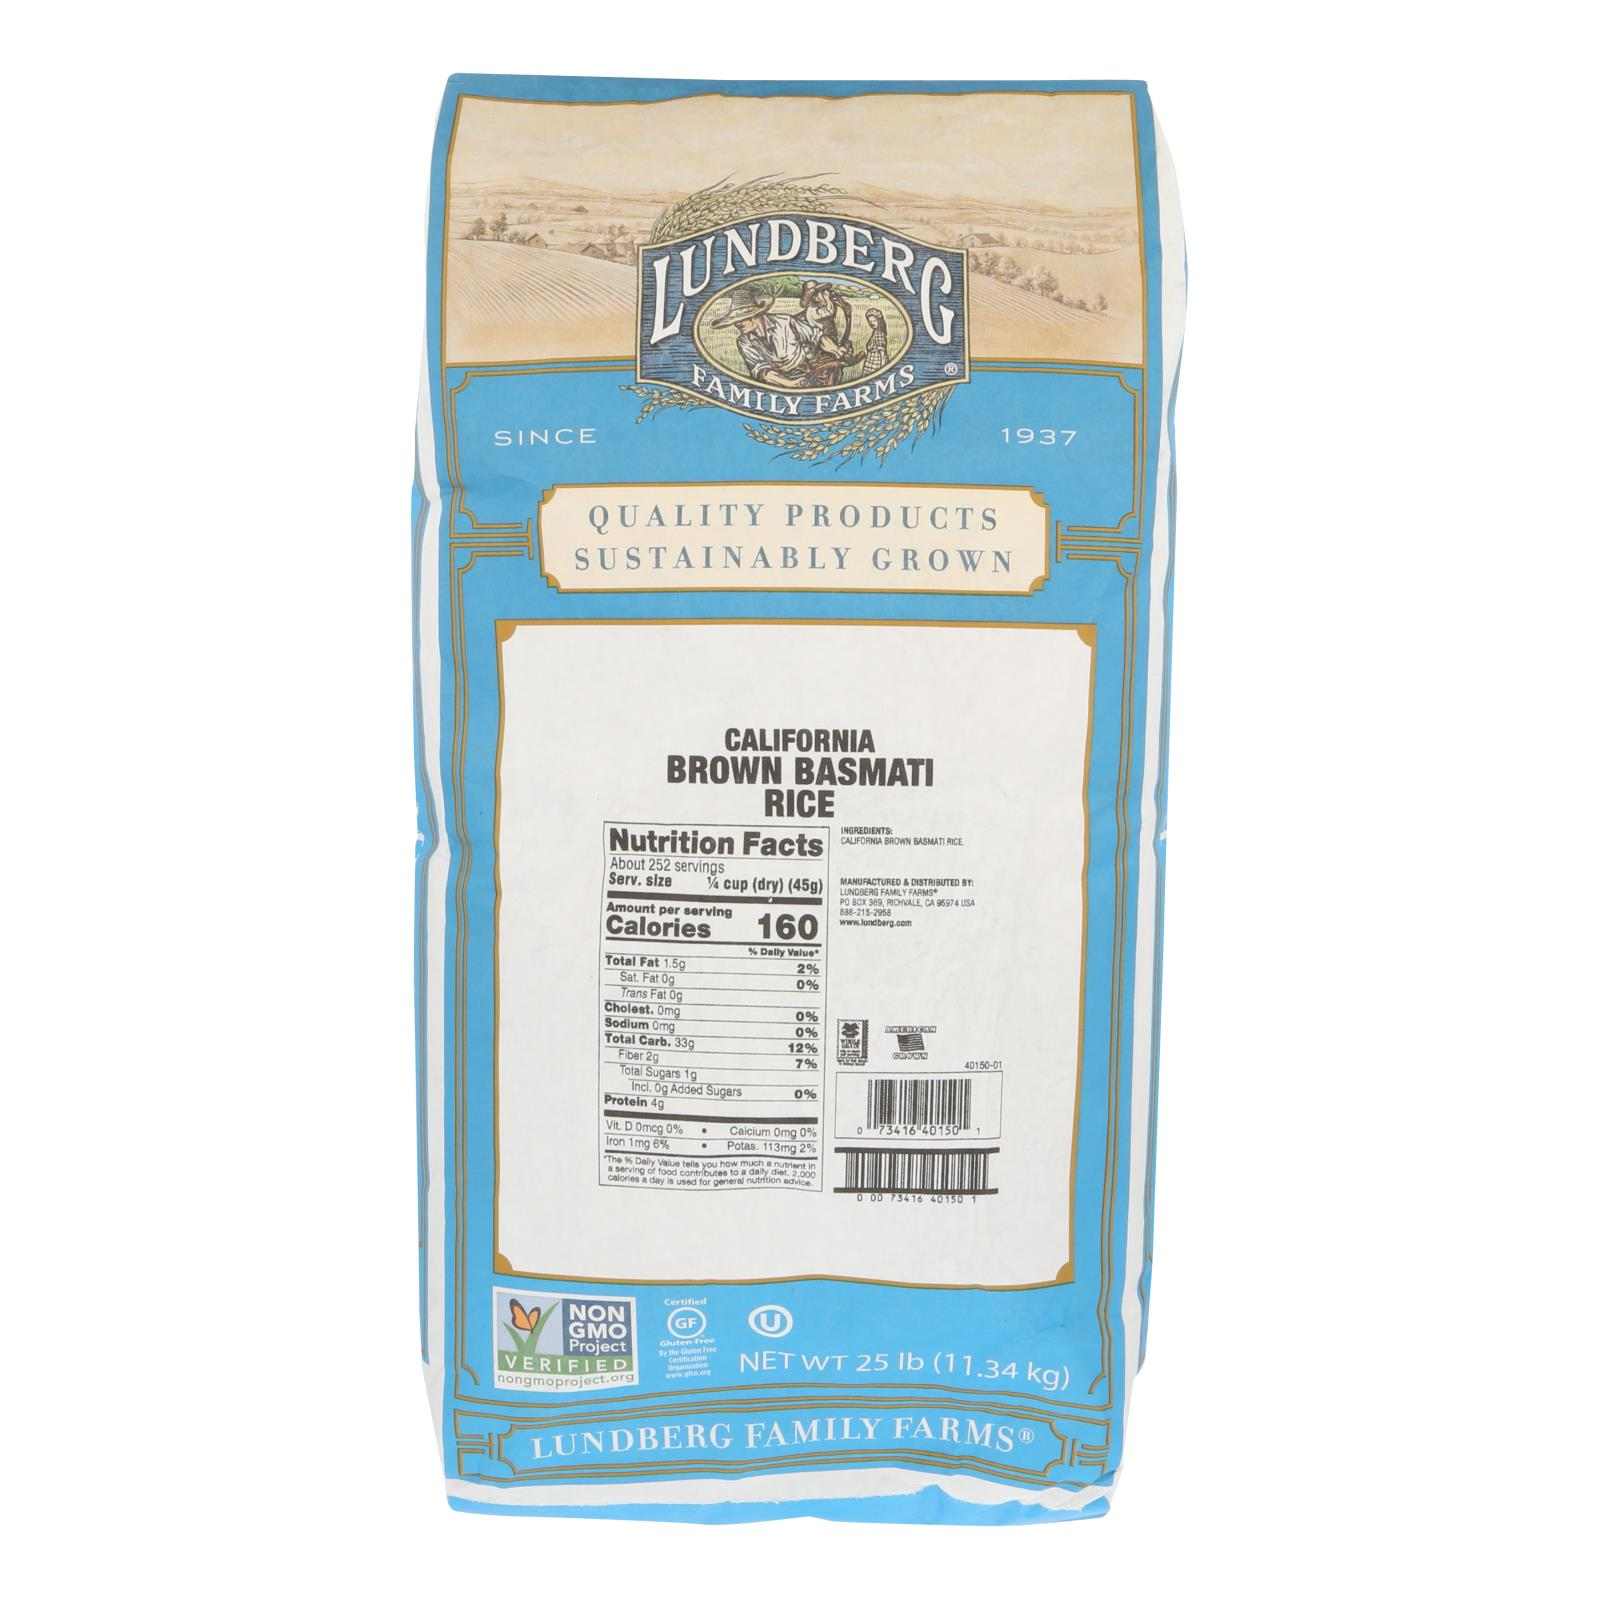 Lundberg Family Farms Brown Basmati Rice Case Of 25 Lbs Organic Vegan Vegetarian And Natural Products Provided By Gooddealforyou Com